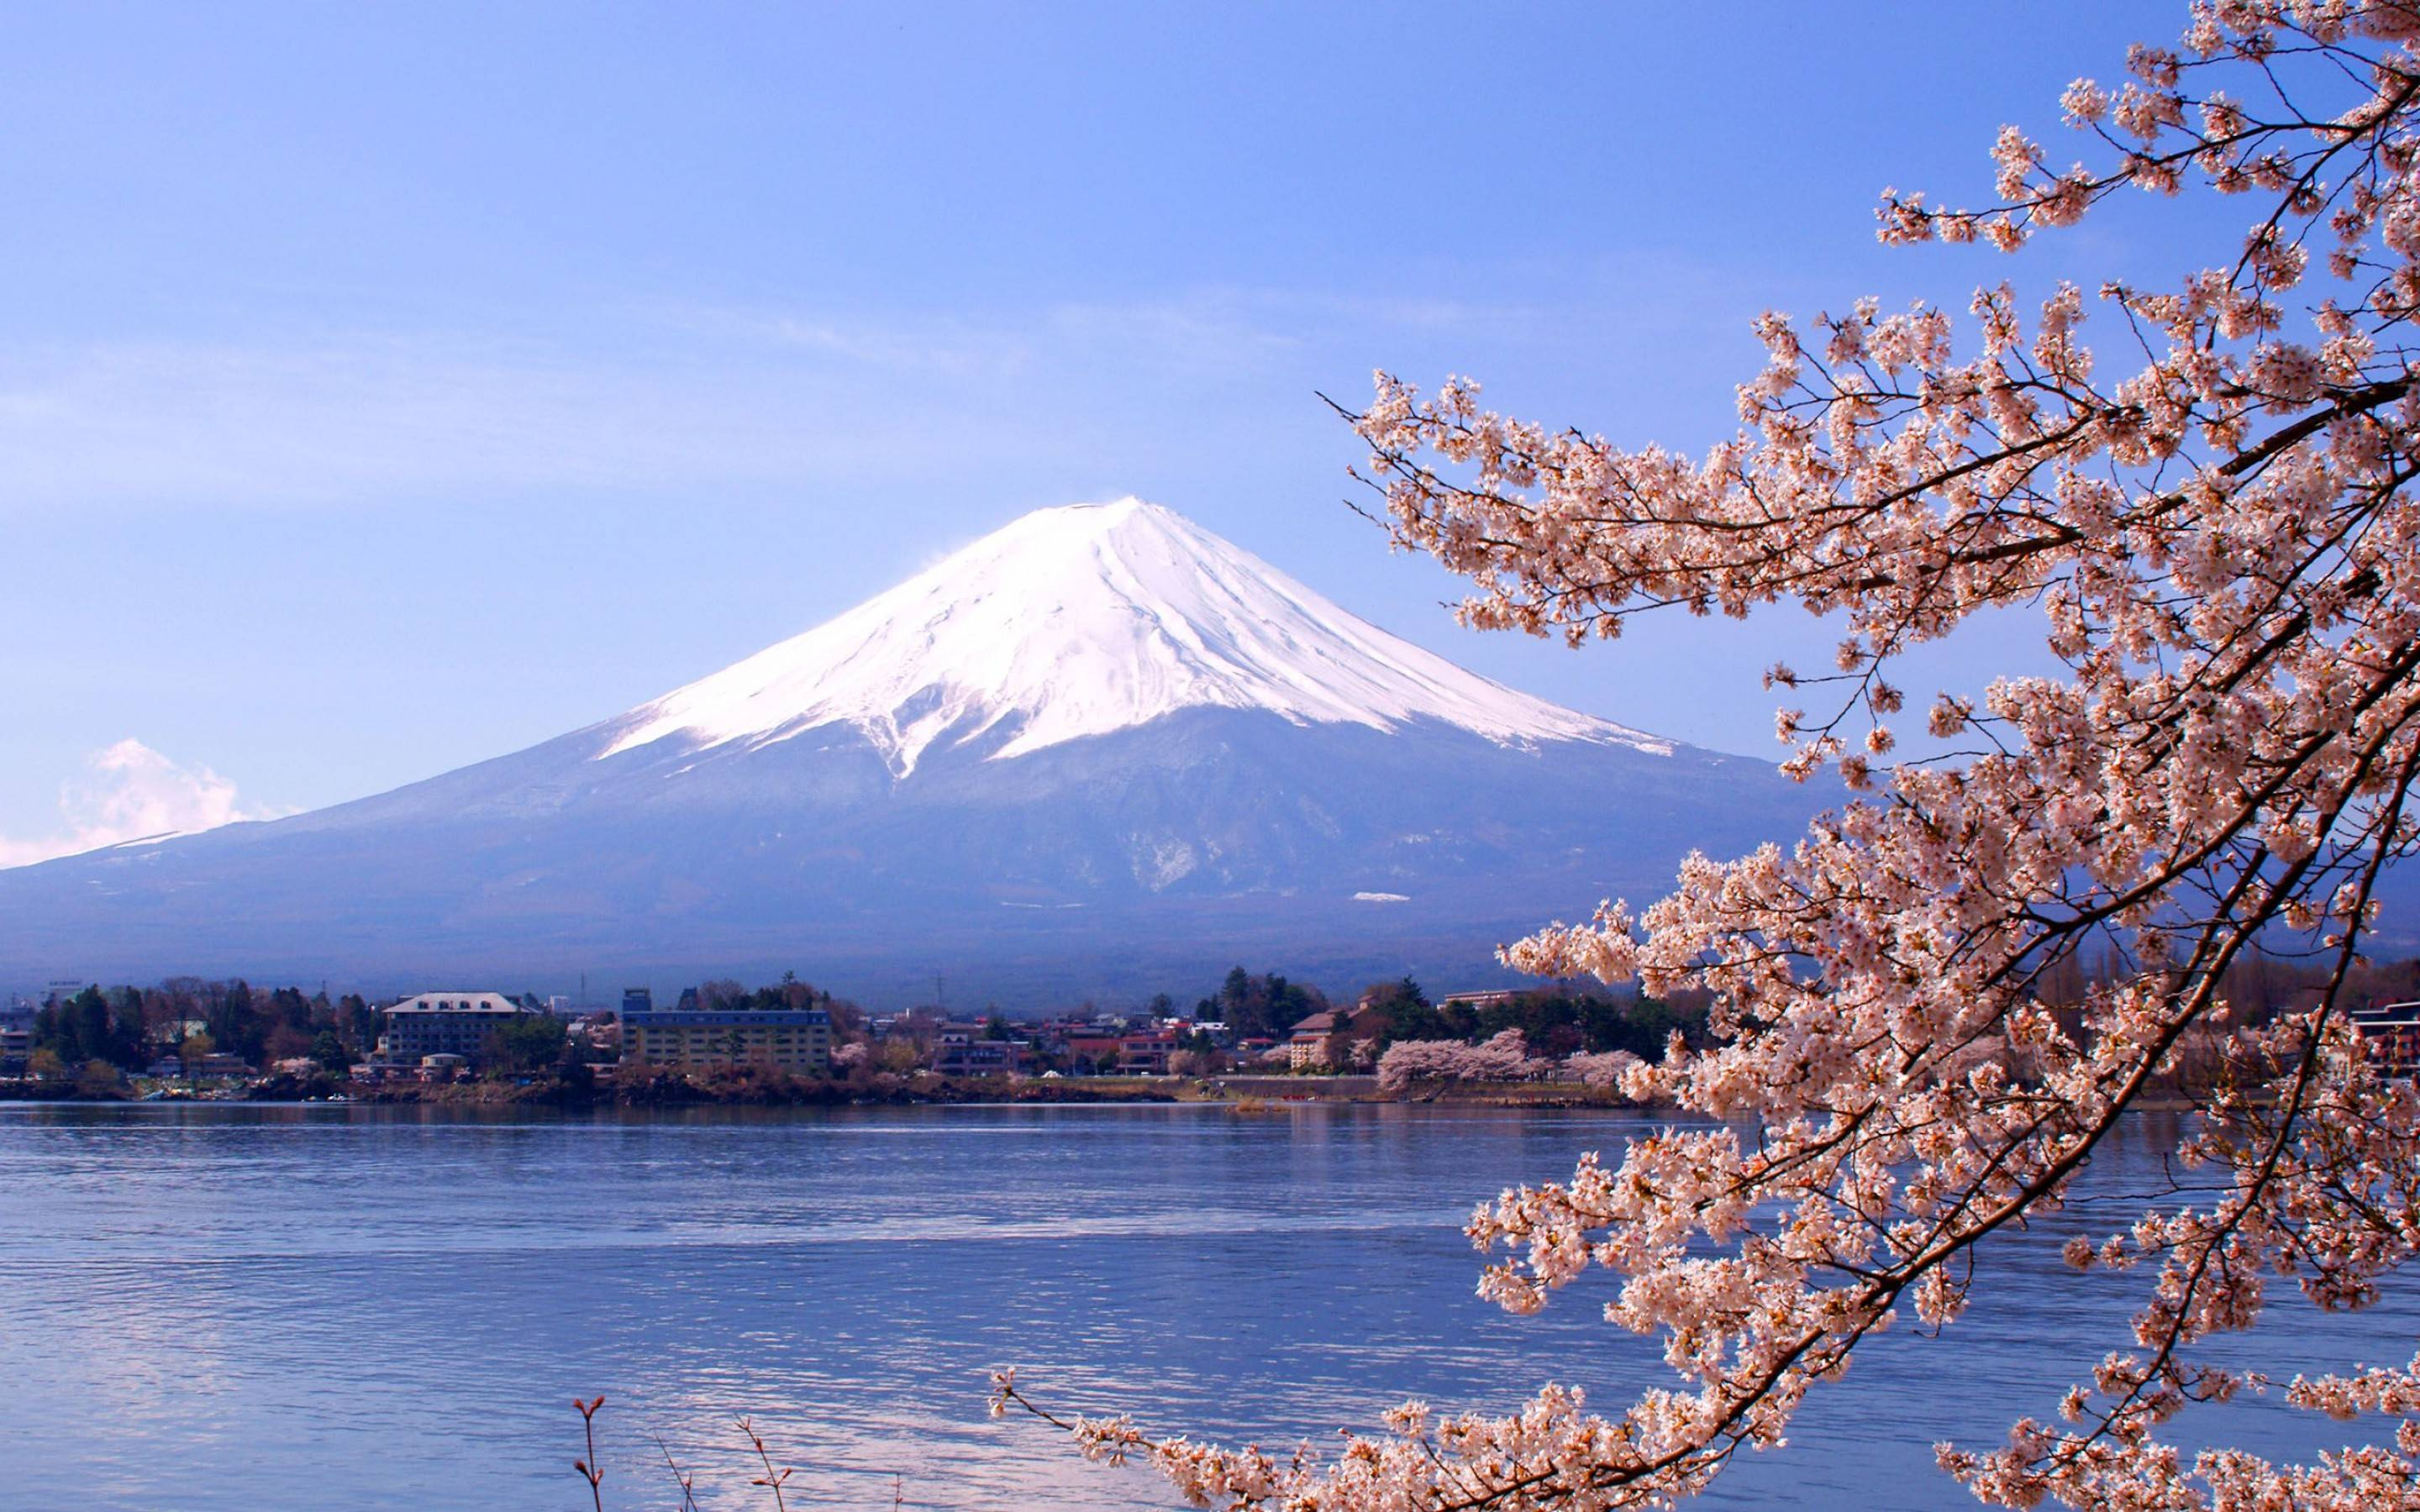 Mount Fuji Desktop Wallpapers Top Free Mount Fuji Desktop